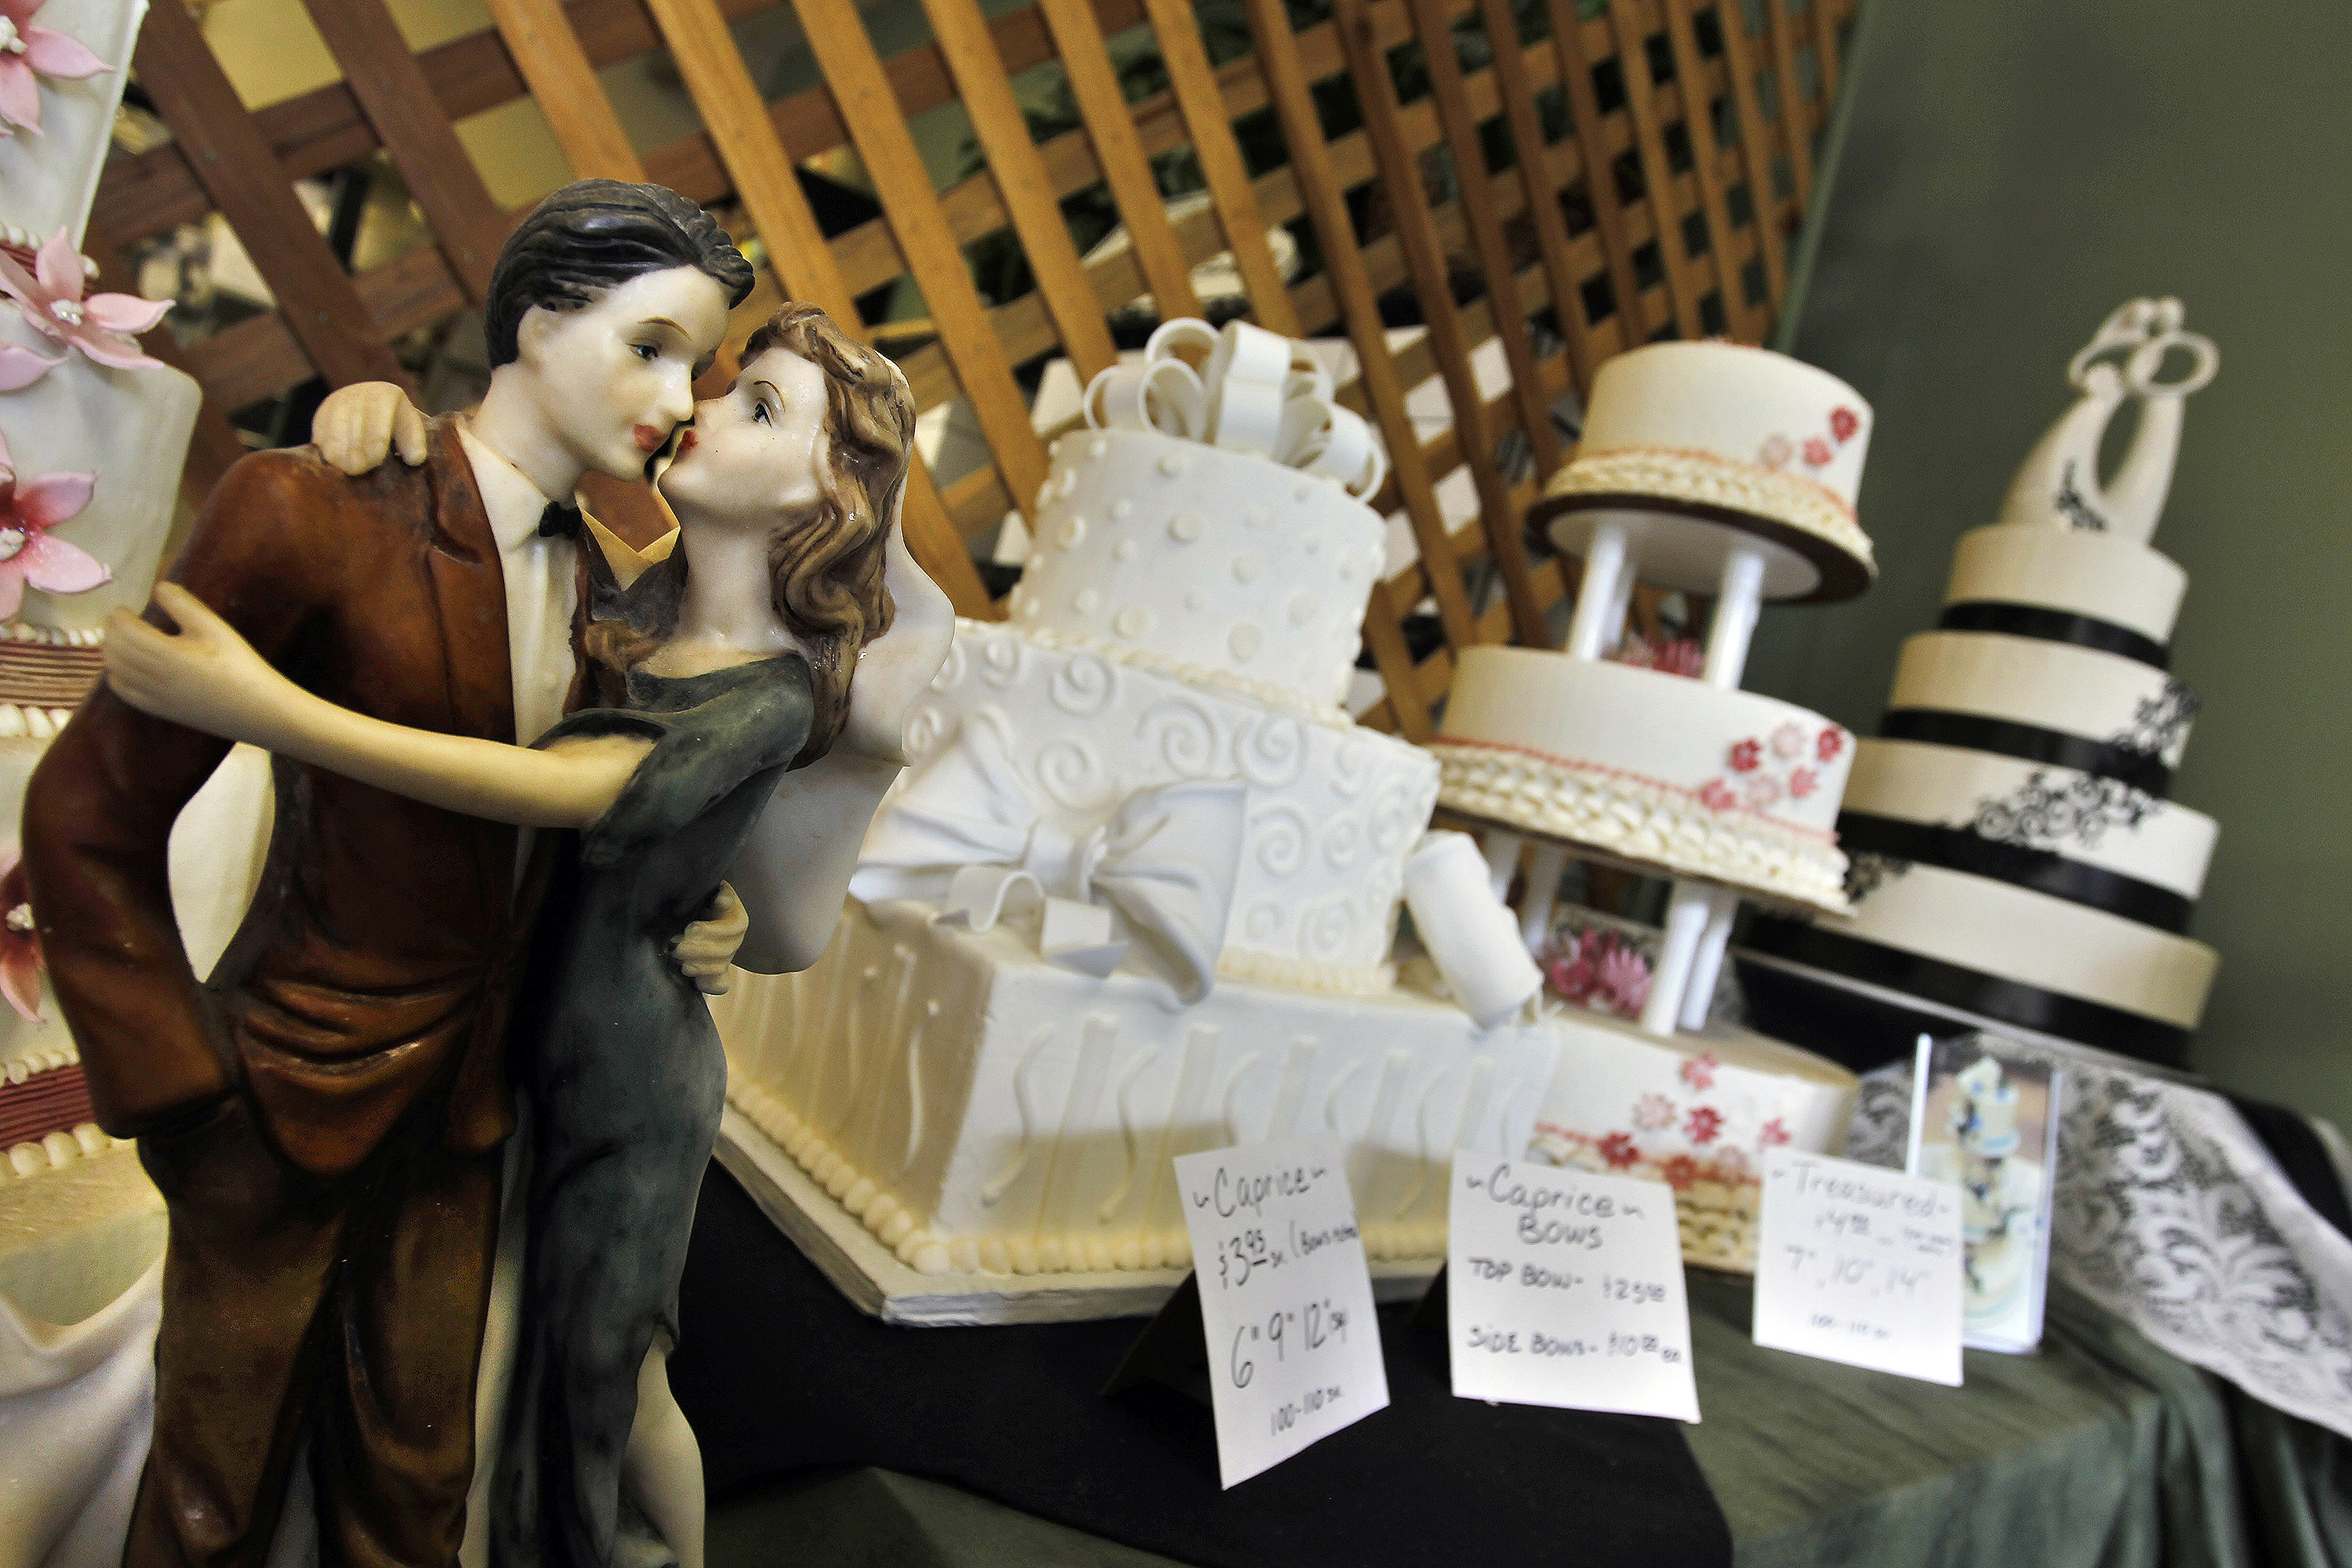 Photo: Figurines are depicted in an embrace at a wedding cake display at Masterpiece Cakeshop, in Denver,